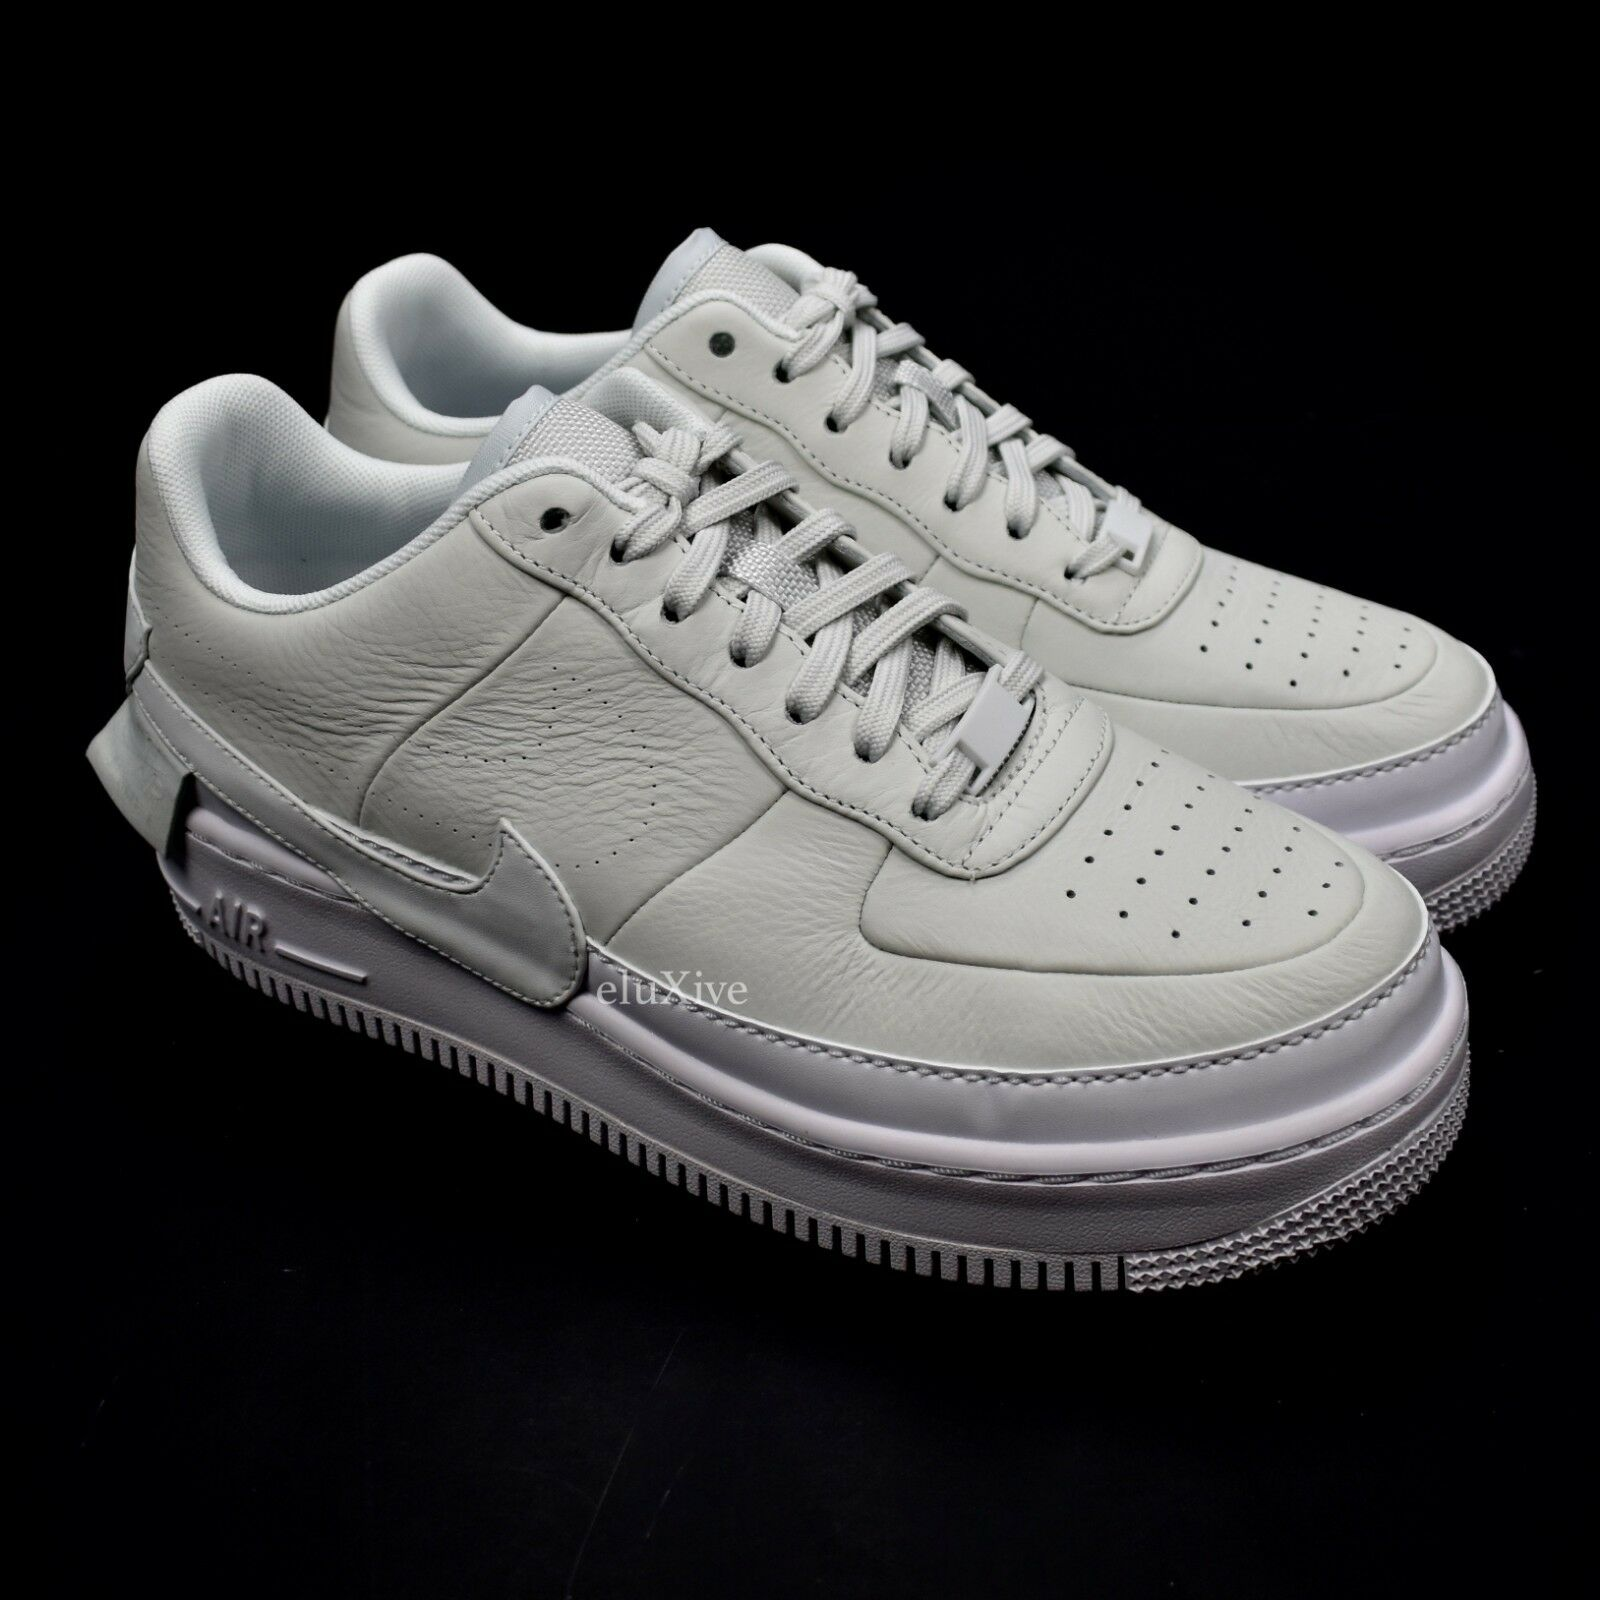 NWT Nike Women's Air Force 1 Jester XX Off White Leather Sneakers 2018 AUTHENTIC